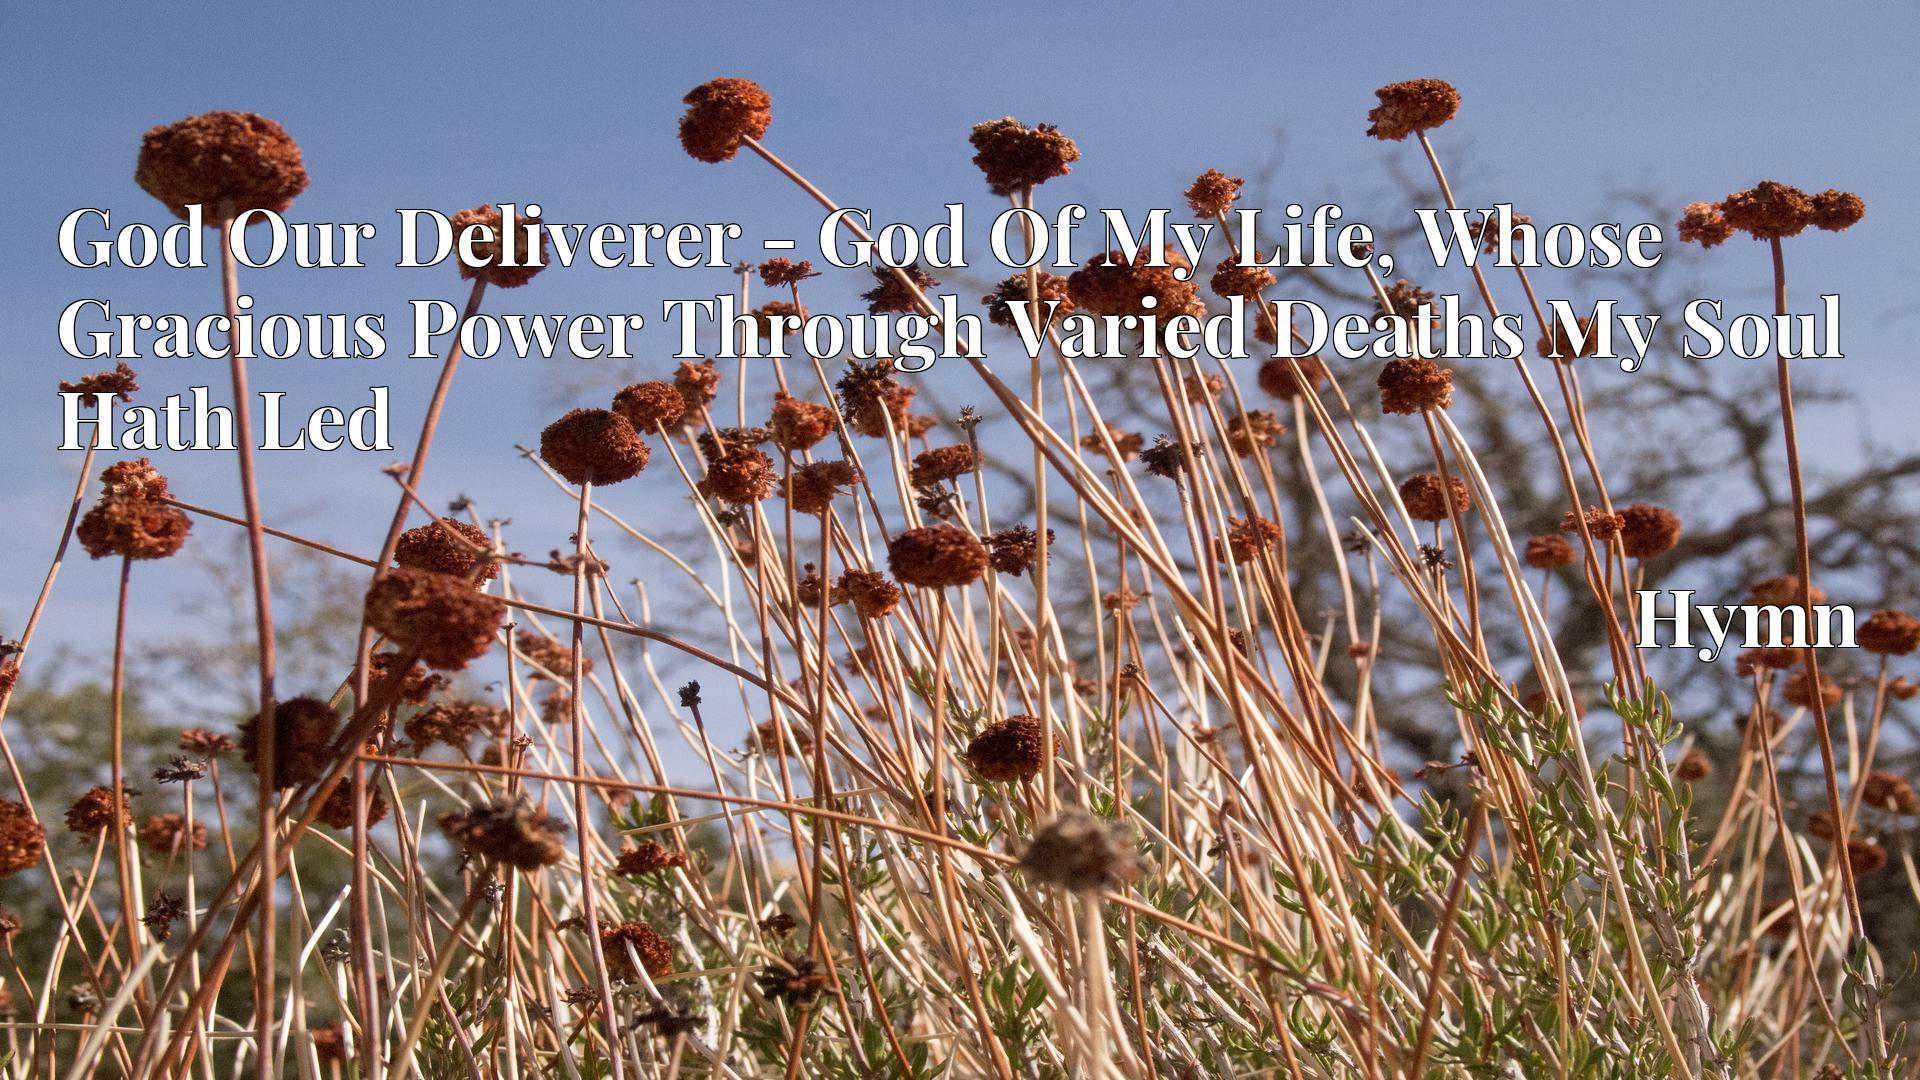 God Our Deliverer - God Of My Life, Whose Gracious Power Through Varied Deaths My Soul Hath Led - Hymn